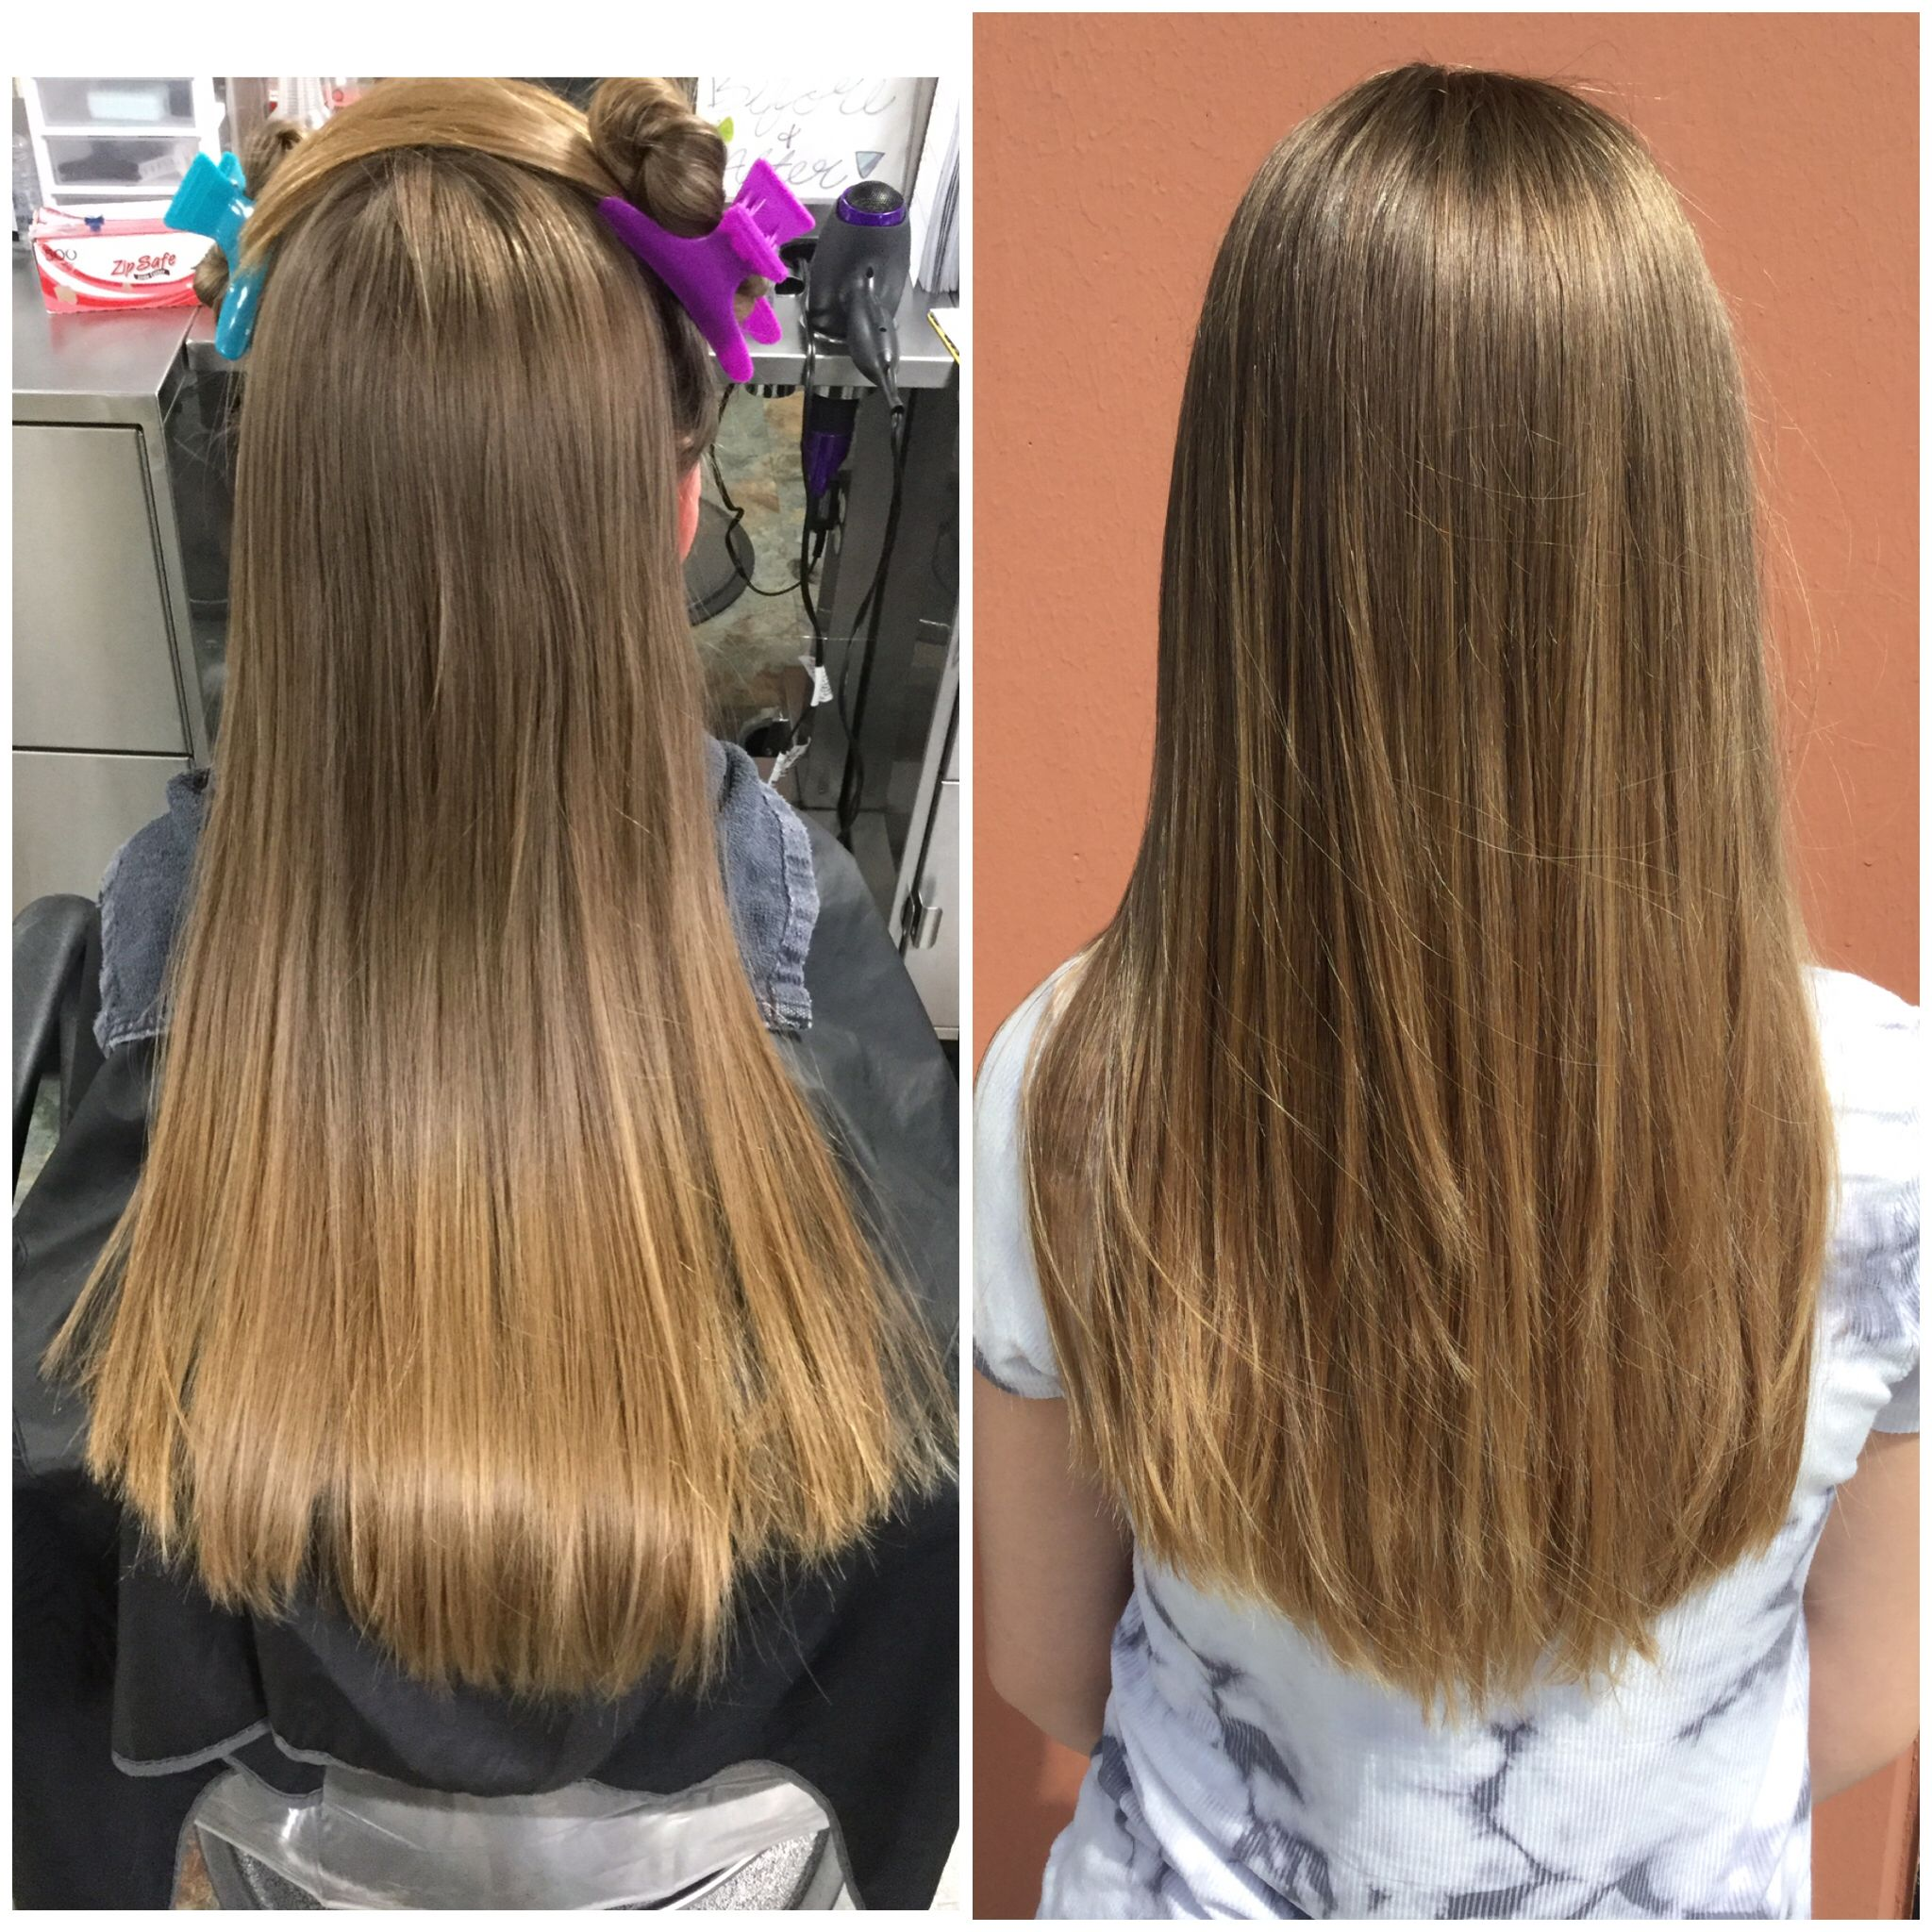 Trimmed up and placed layers into this lovely girls hair using a